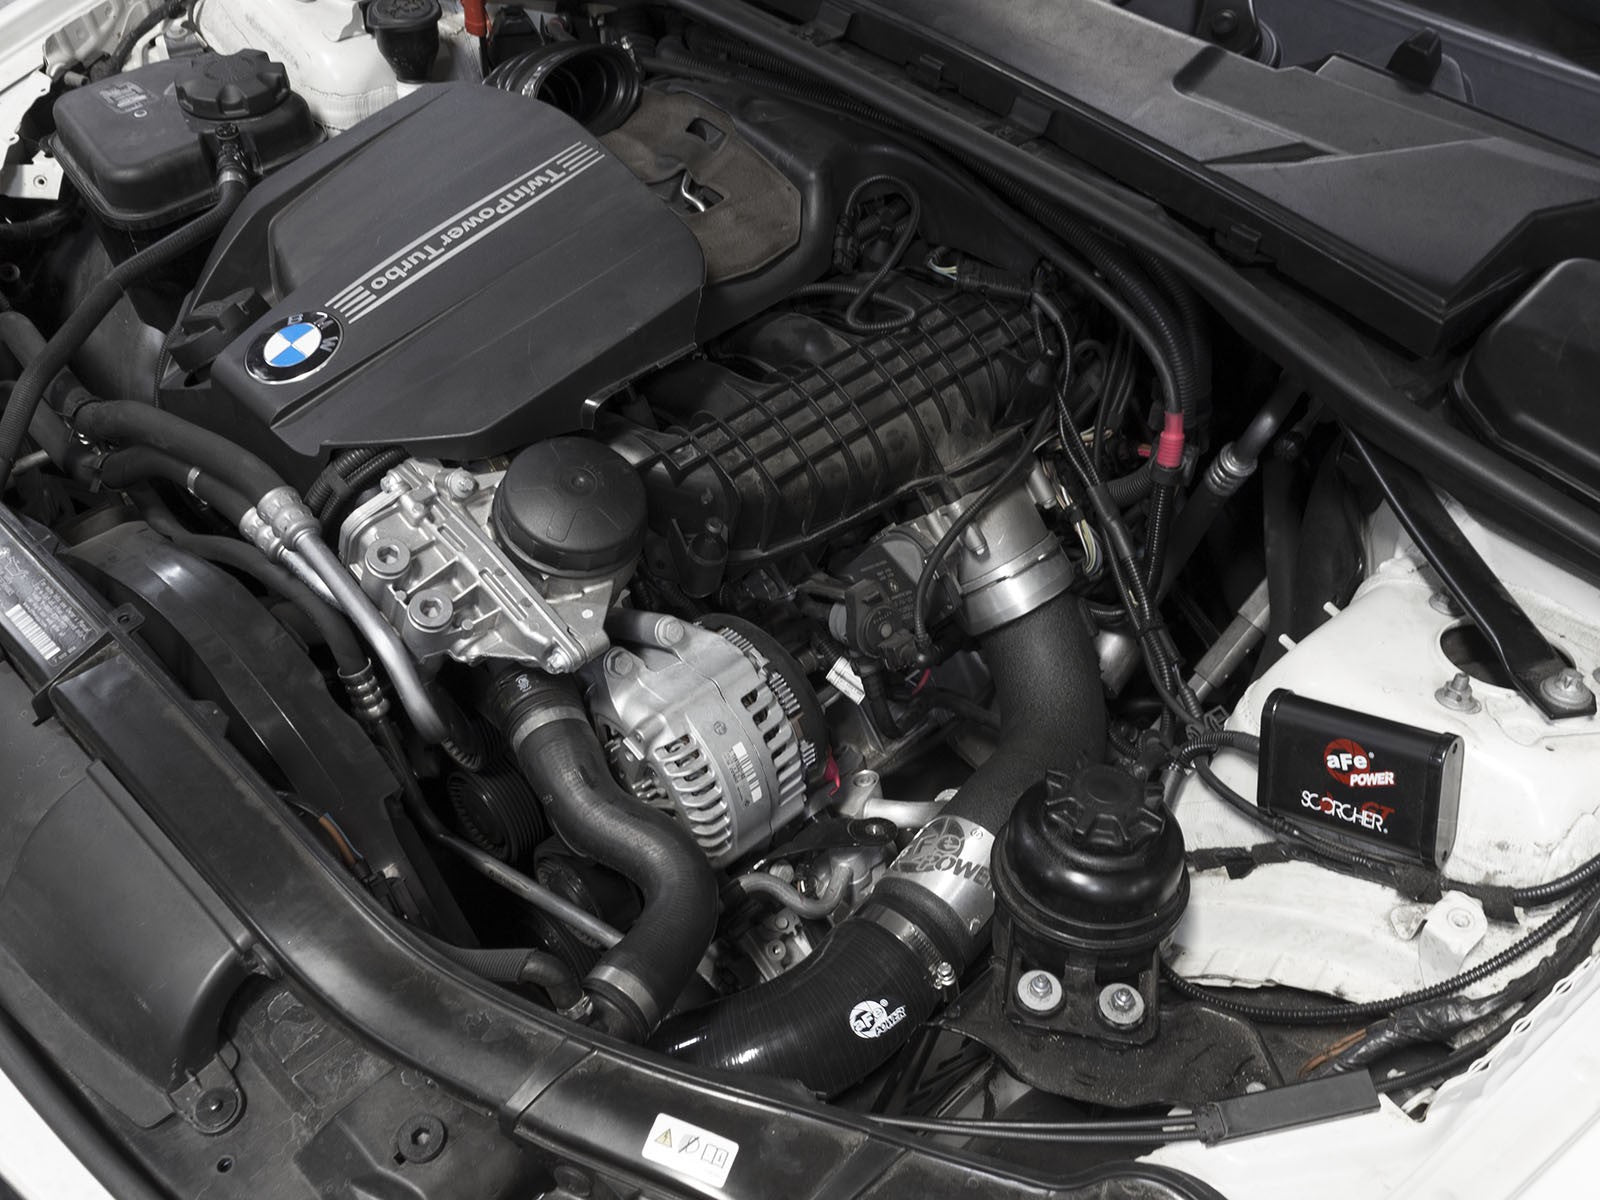 aFe POWER 335i (E9X) 11-13 L6-3.0L (t) N55 BladeRunner GT Series Intercooler with Tubes - Bimmer Performance Center